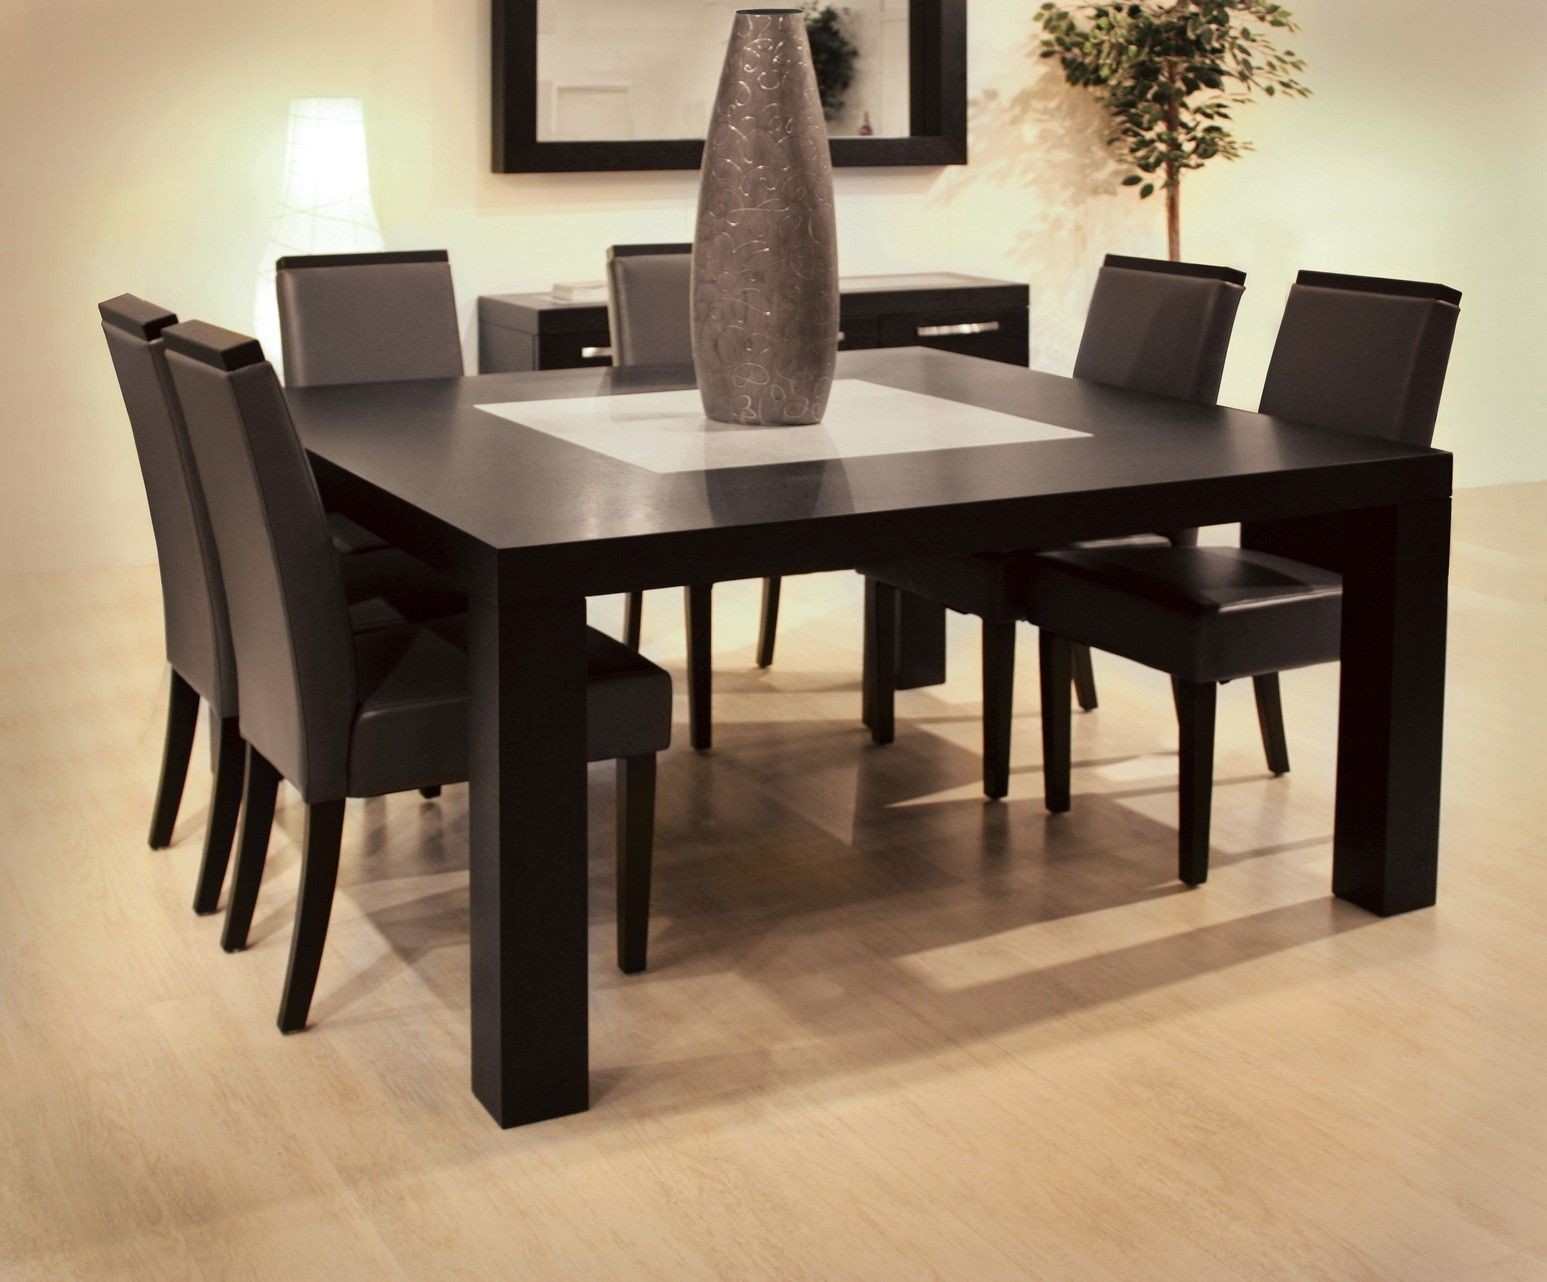 dining table sets wood modern dining room pinterest square dining table sets wood modern